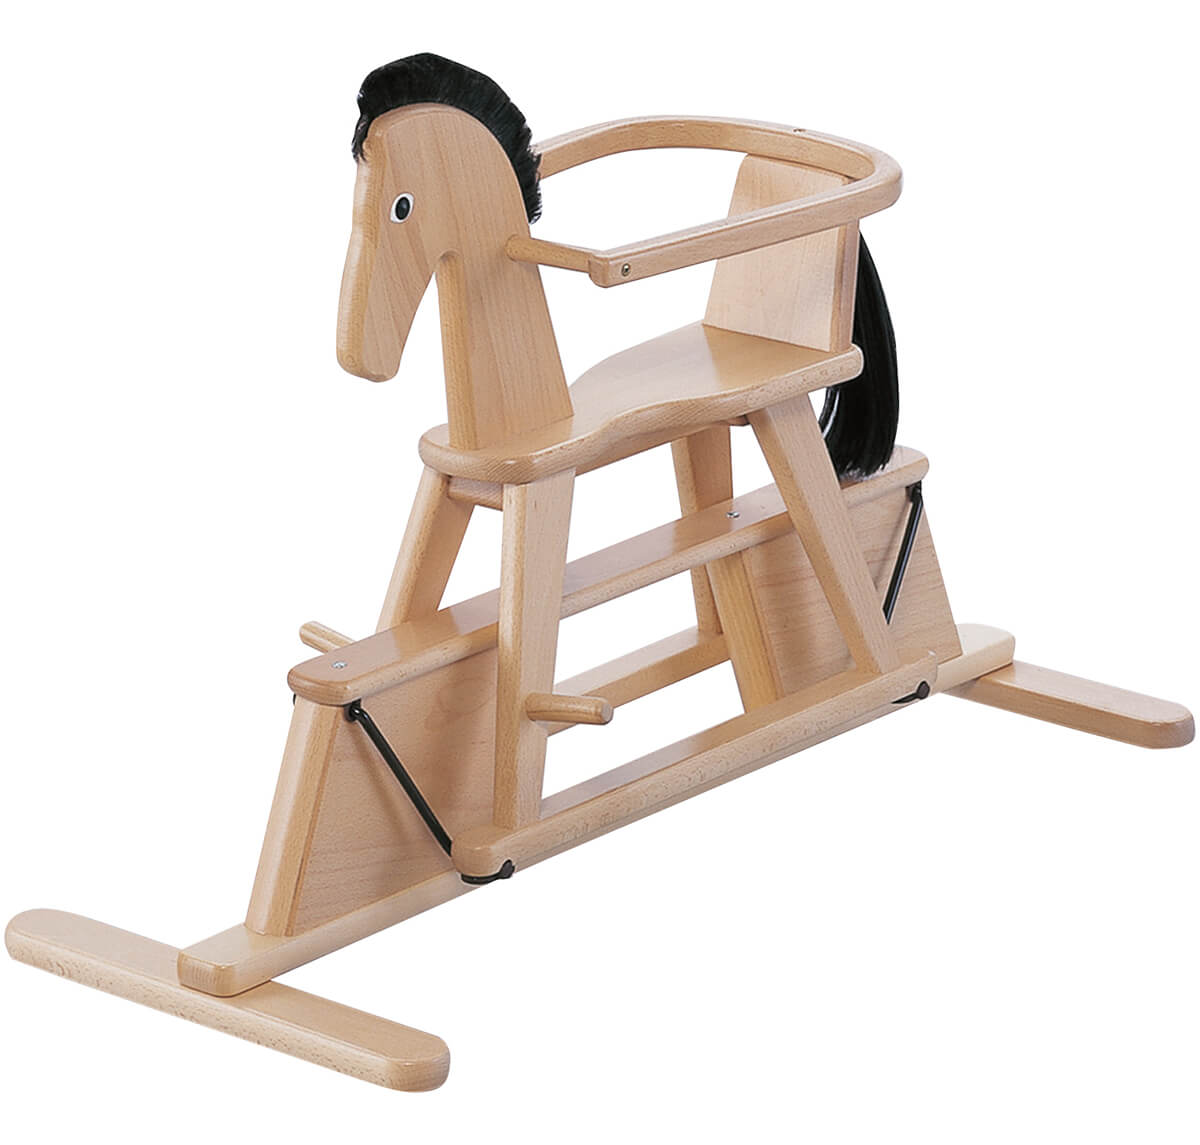 Geuther Swingly Star Wooden Rocking Horse